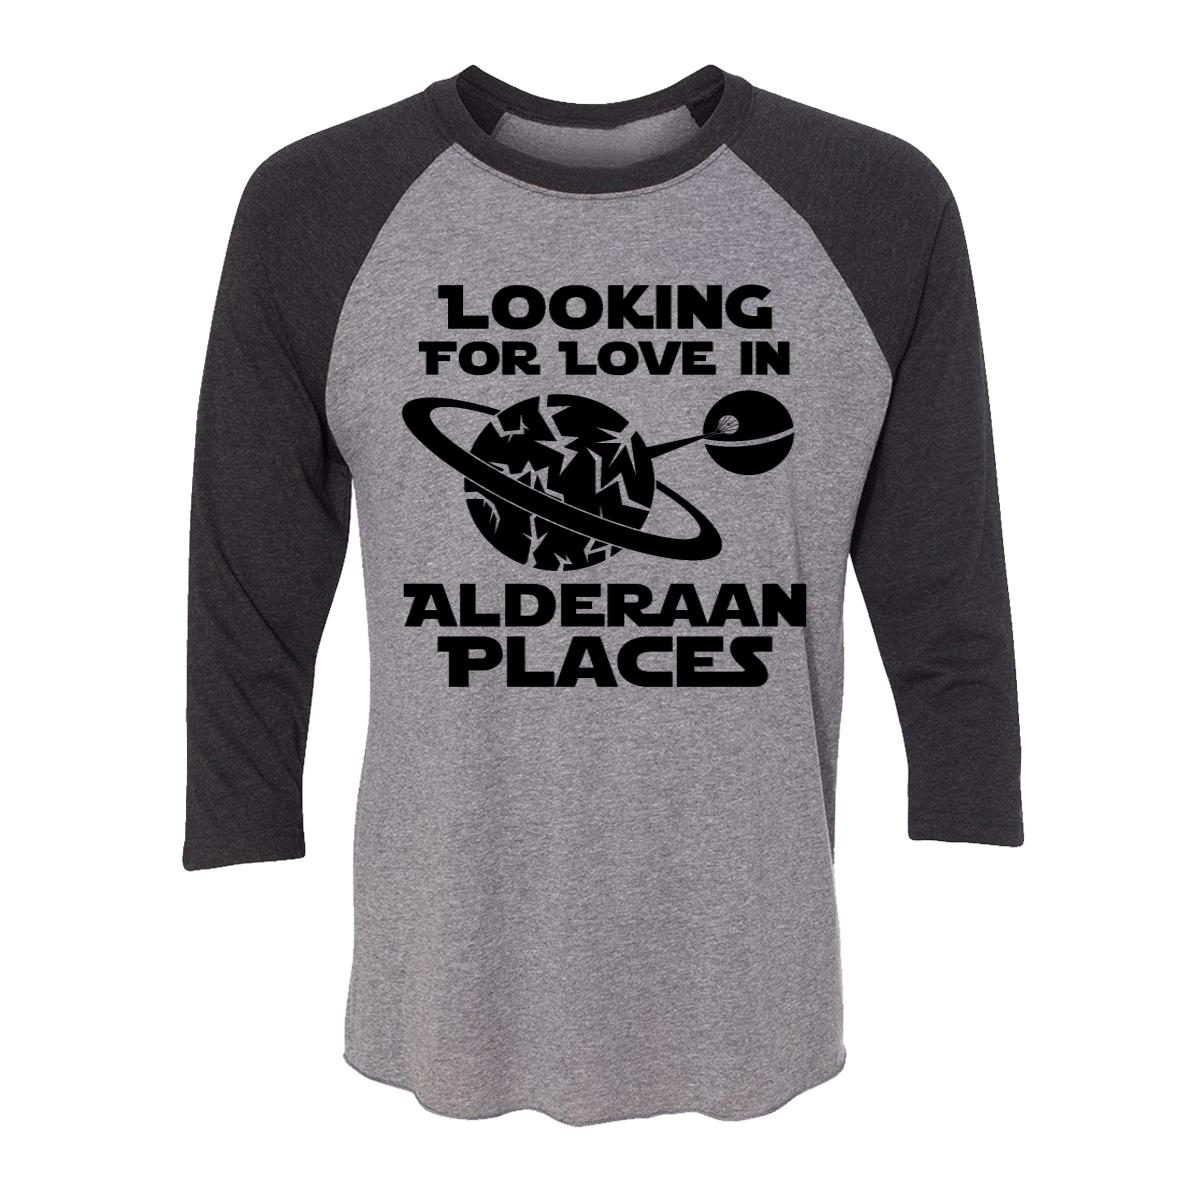 9d435225 Looking For Love In Alderaan Places Adult Baseball Shirt - Moment Gear